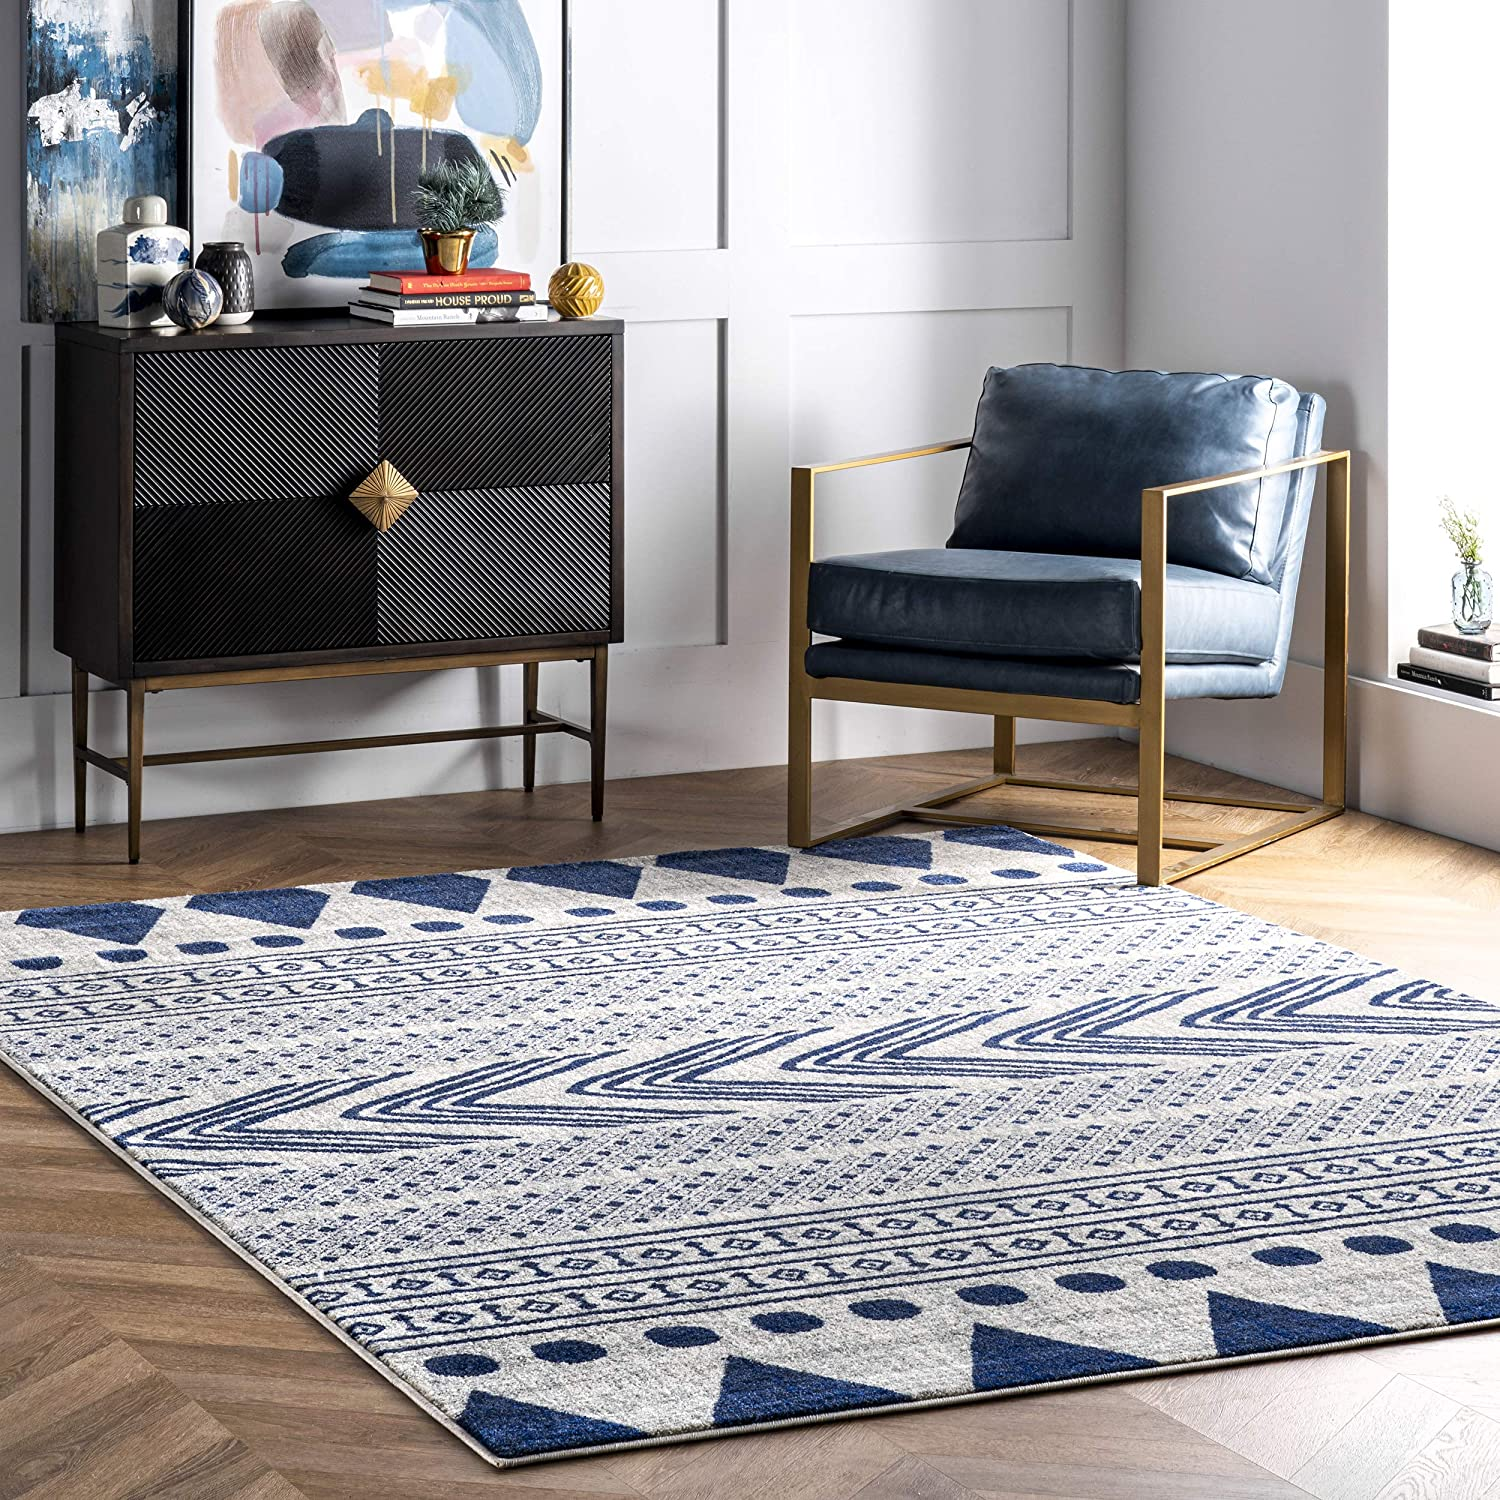 nuLOOM Shaina Tribal Area Rug x 10' Blue Don't miss the campaign service 14'